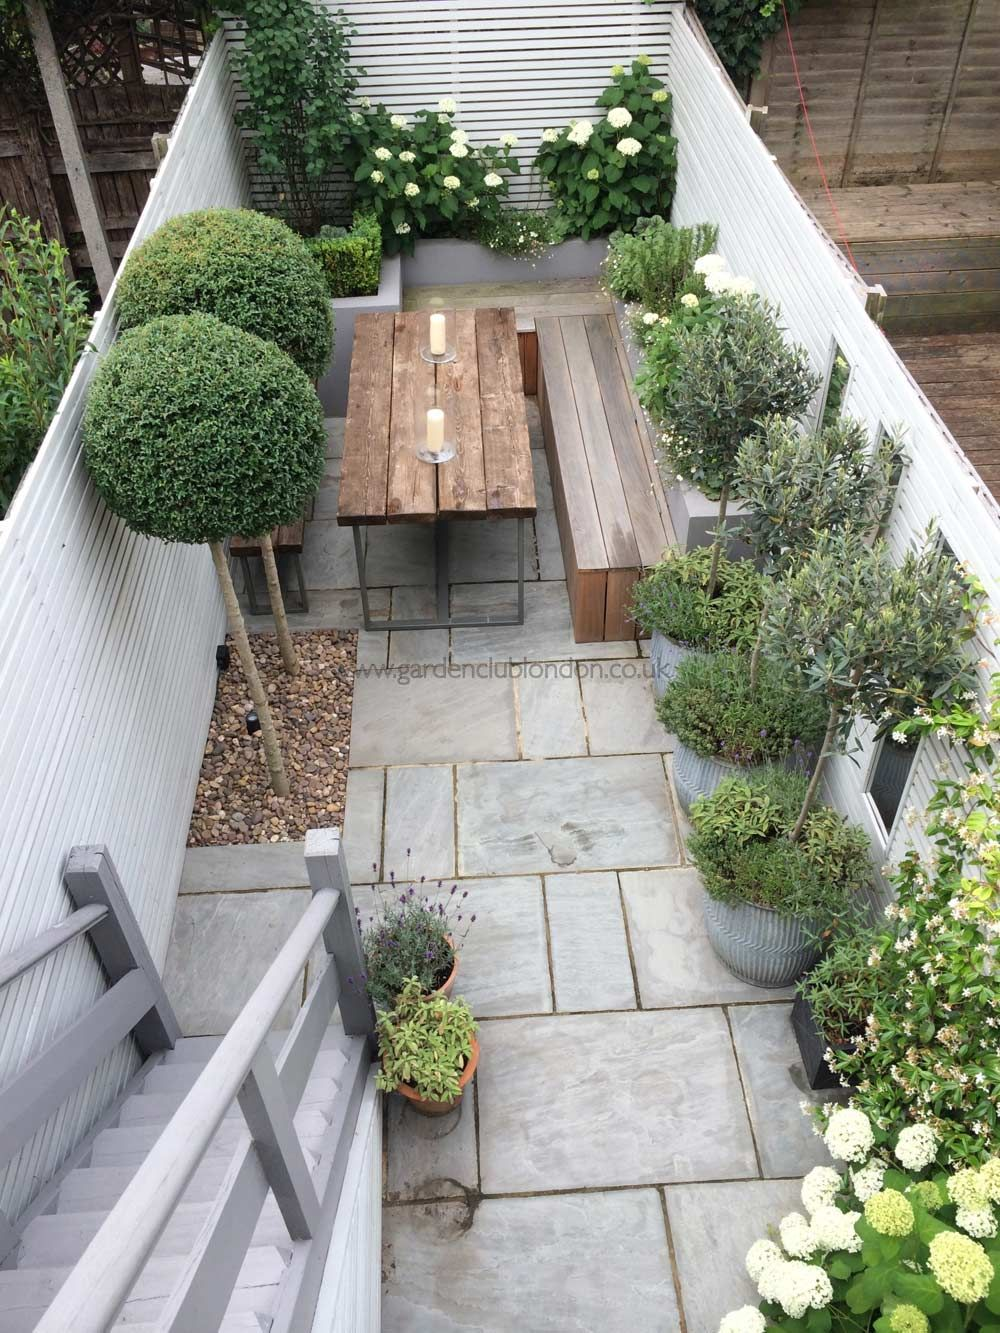 slim rear contemporary garden design London | Garden | Pinterest ...